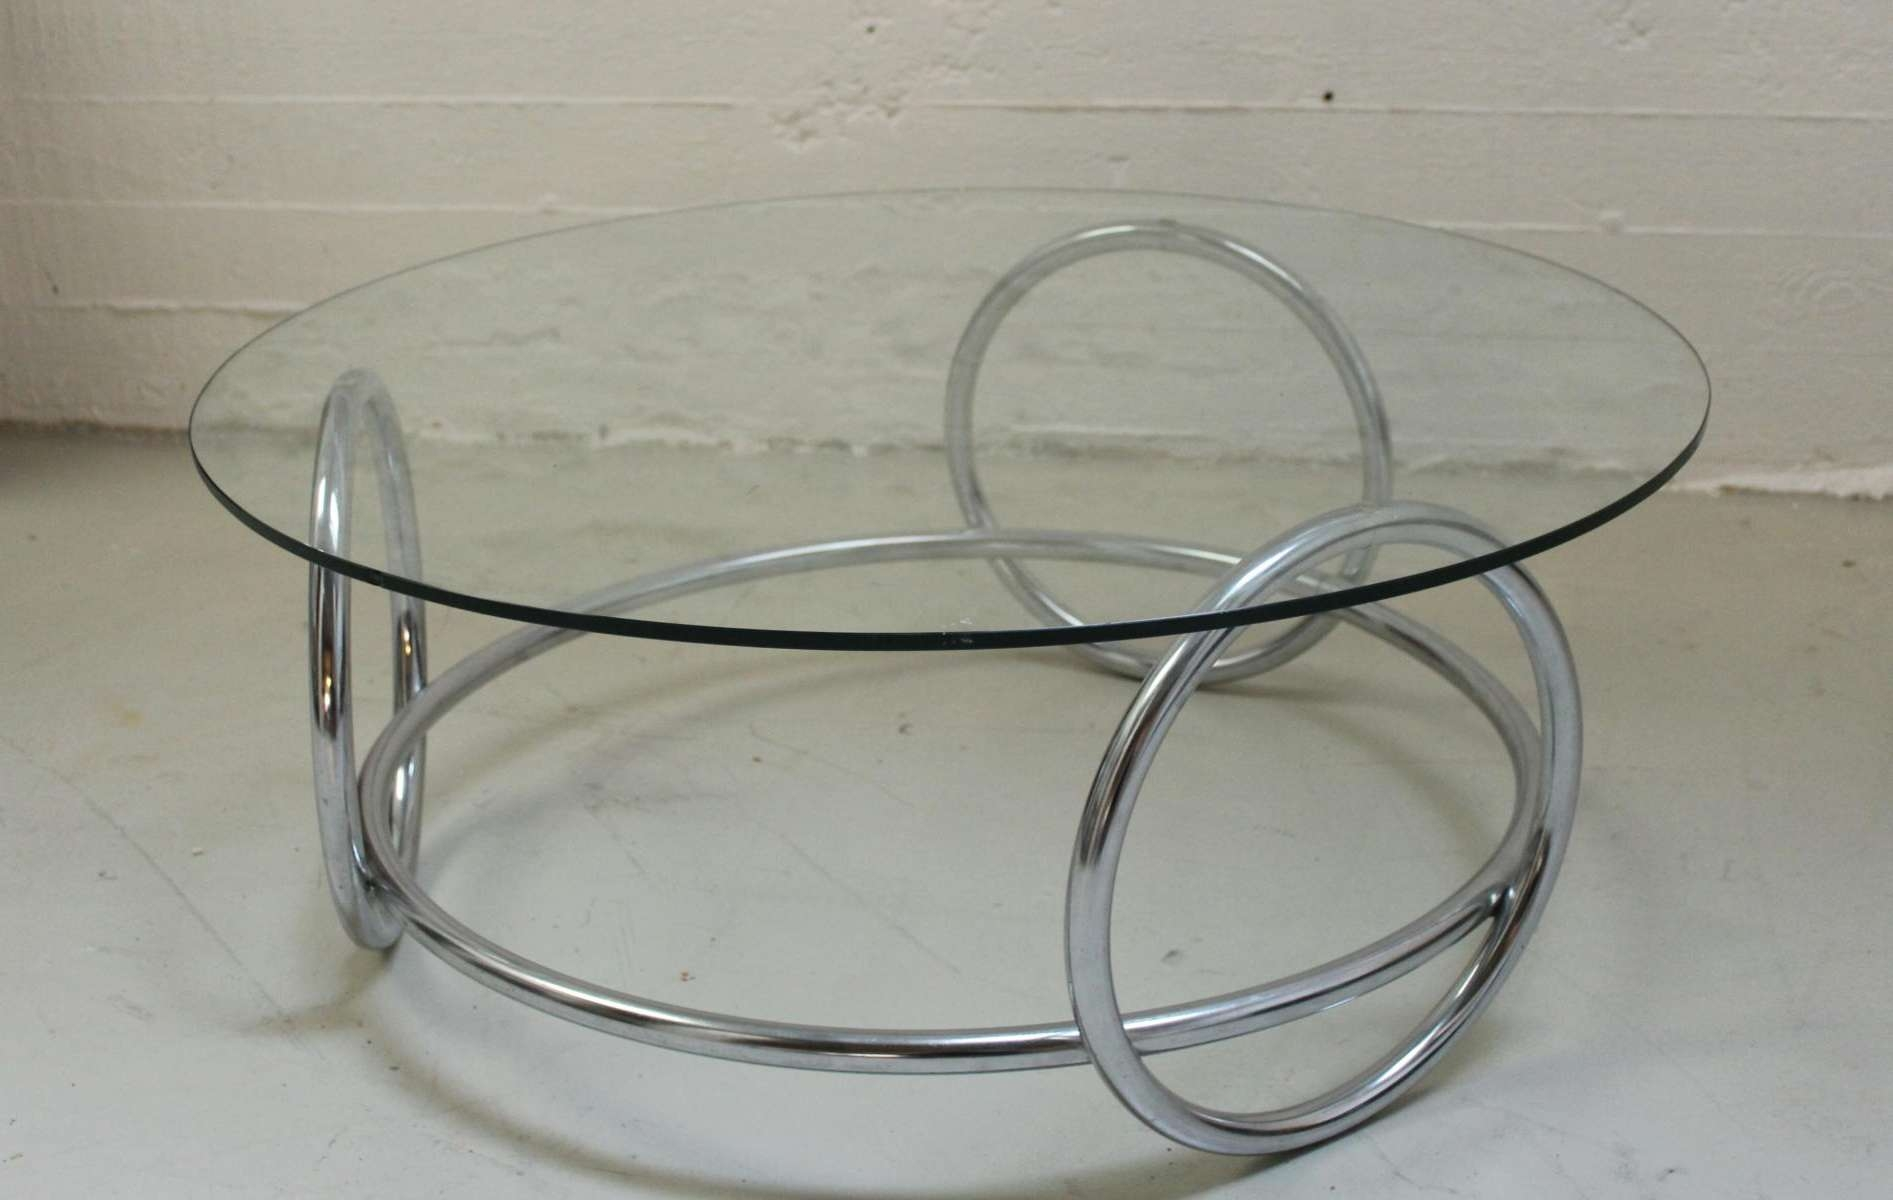 Fashionable Glass And Chrome Coffee Tables With Chrome Ring And Glass Coffee Table, 1970s For Sale At Pamono (View 18 of 20)